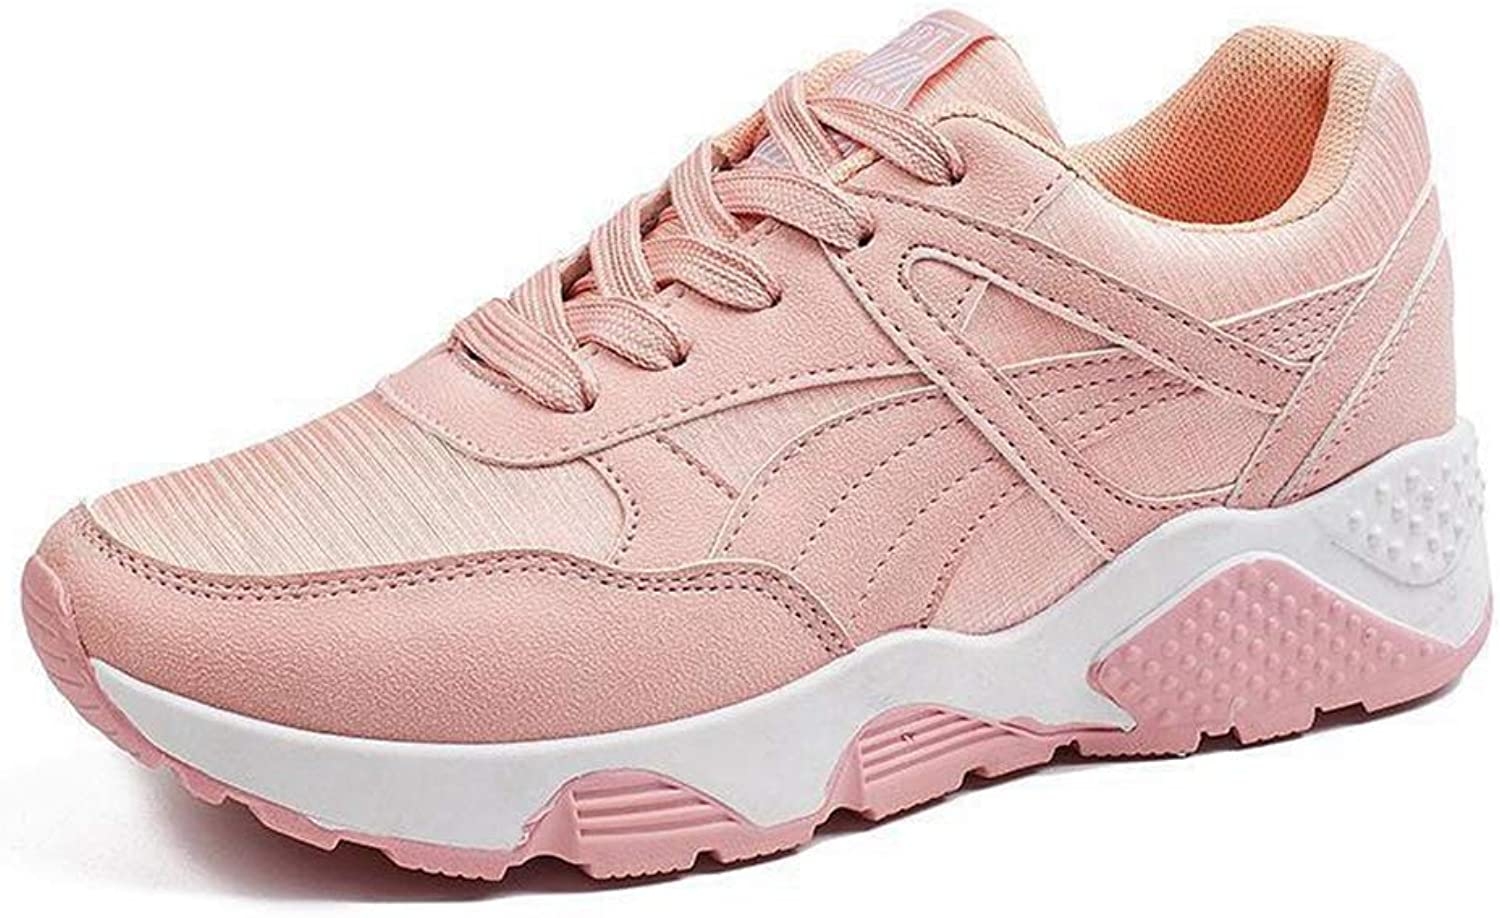 Hoxekle Woman Sneakers shoes Casual Female shoes Wedges Pink Platform Sneakers Women Lace Up shoes